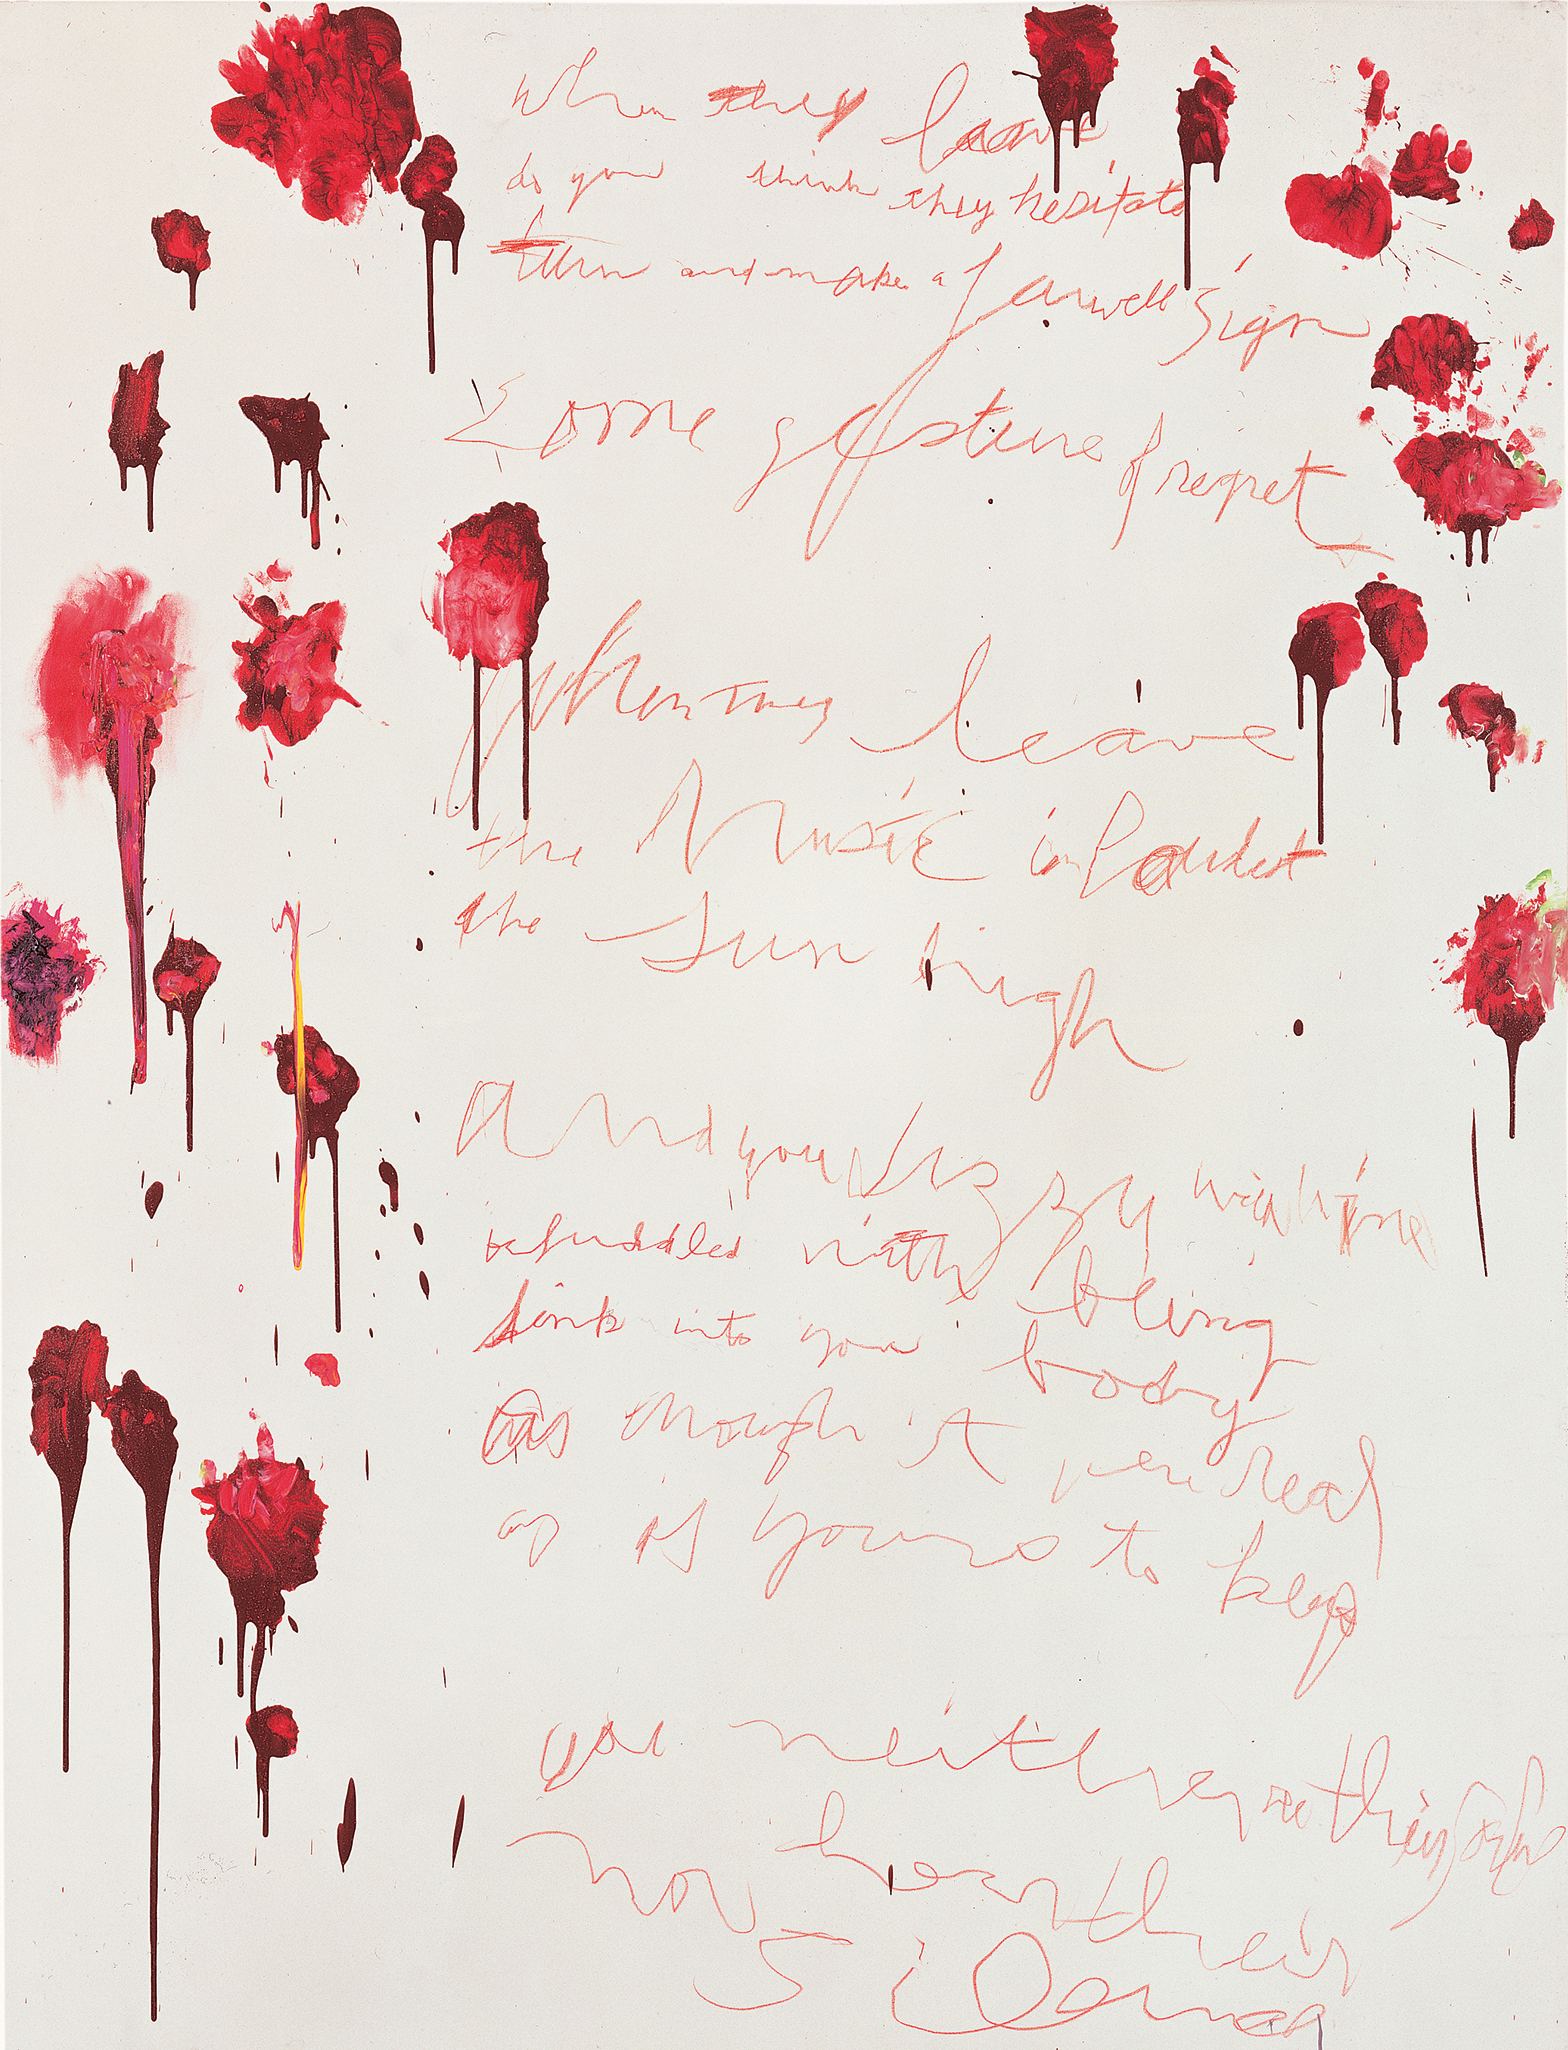 Coronation of Sesostris, Part VI (2000), by Cy Twombly. Acrylic, paint stick, wax crayon and pencil on canvas, 203.7 x 155.6 cm. Pinault Collection. © Pinault Collection / Photo: Robert McKeever.